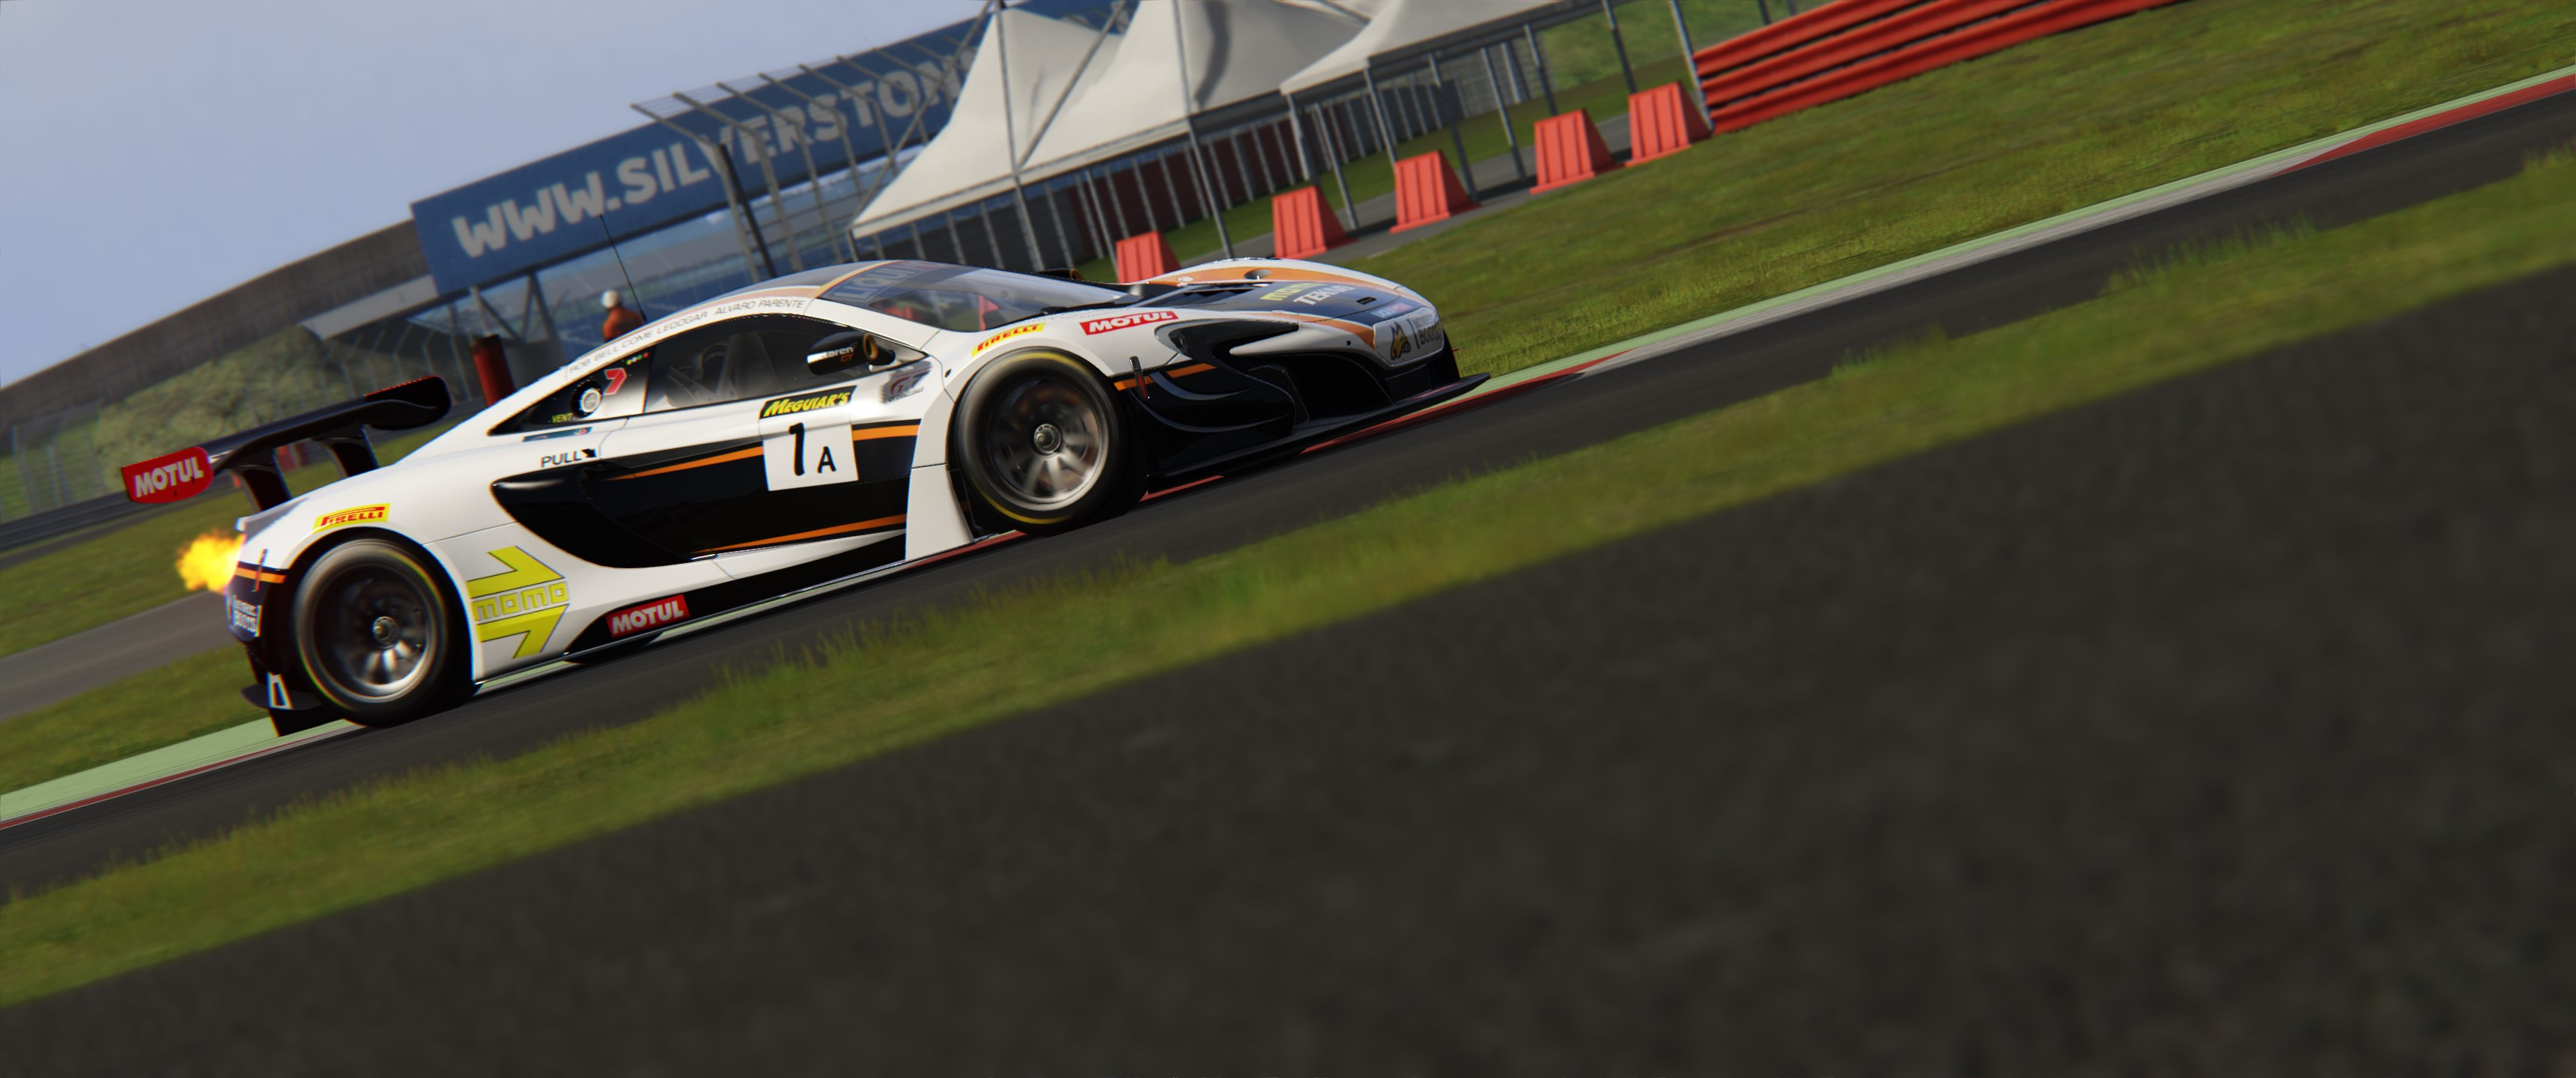 Screenshot_ks_mercedes_amg_gt3_ks_silverstone_14-4-117-21-31-4.jpg